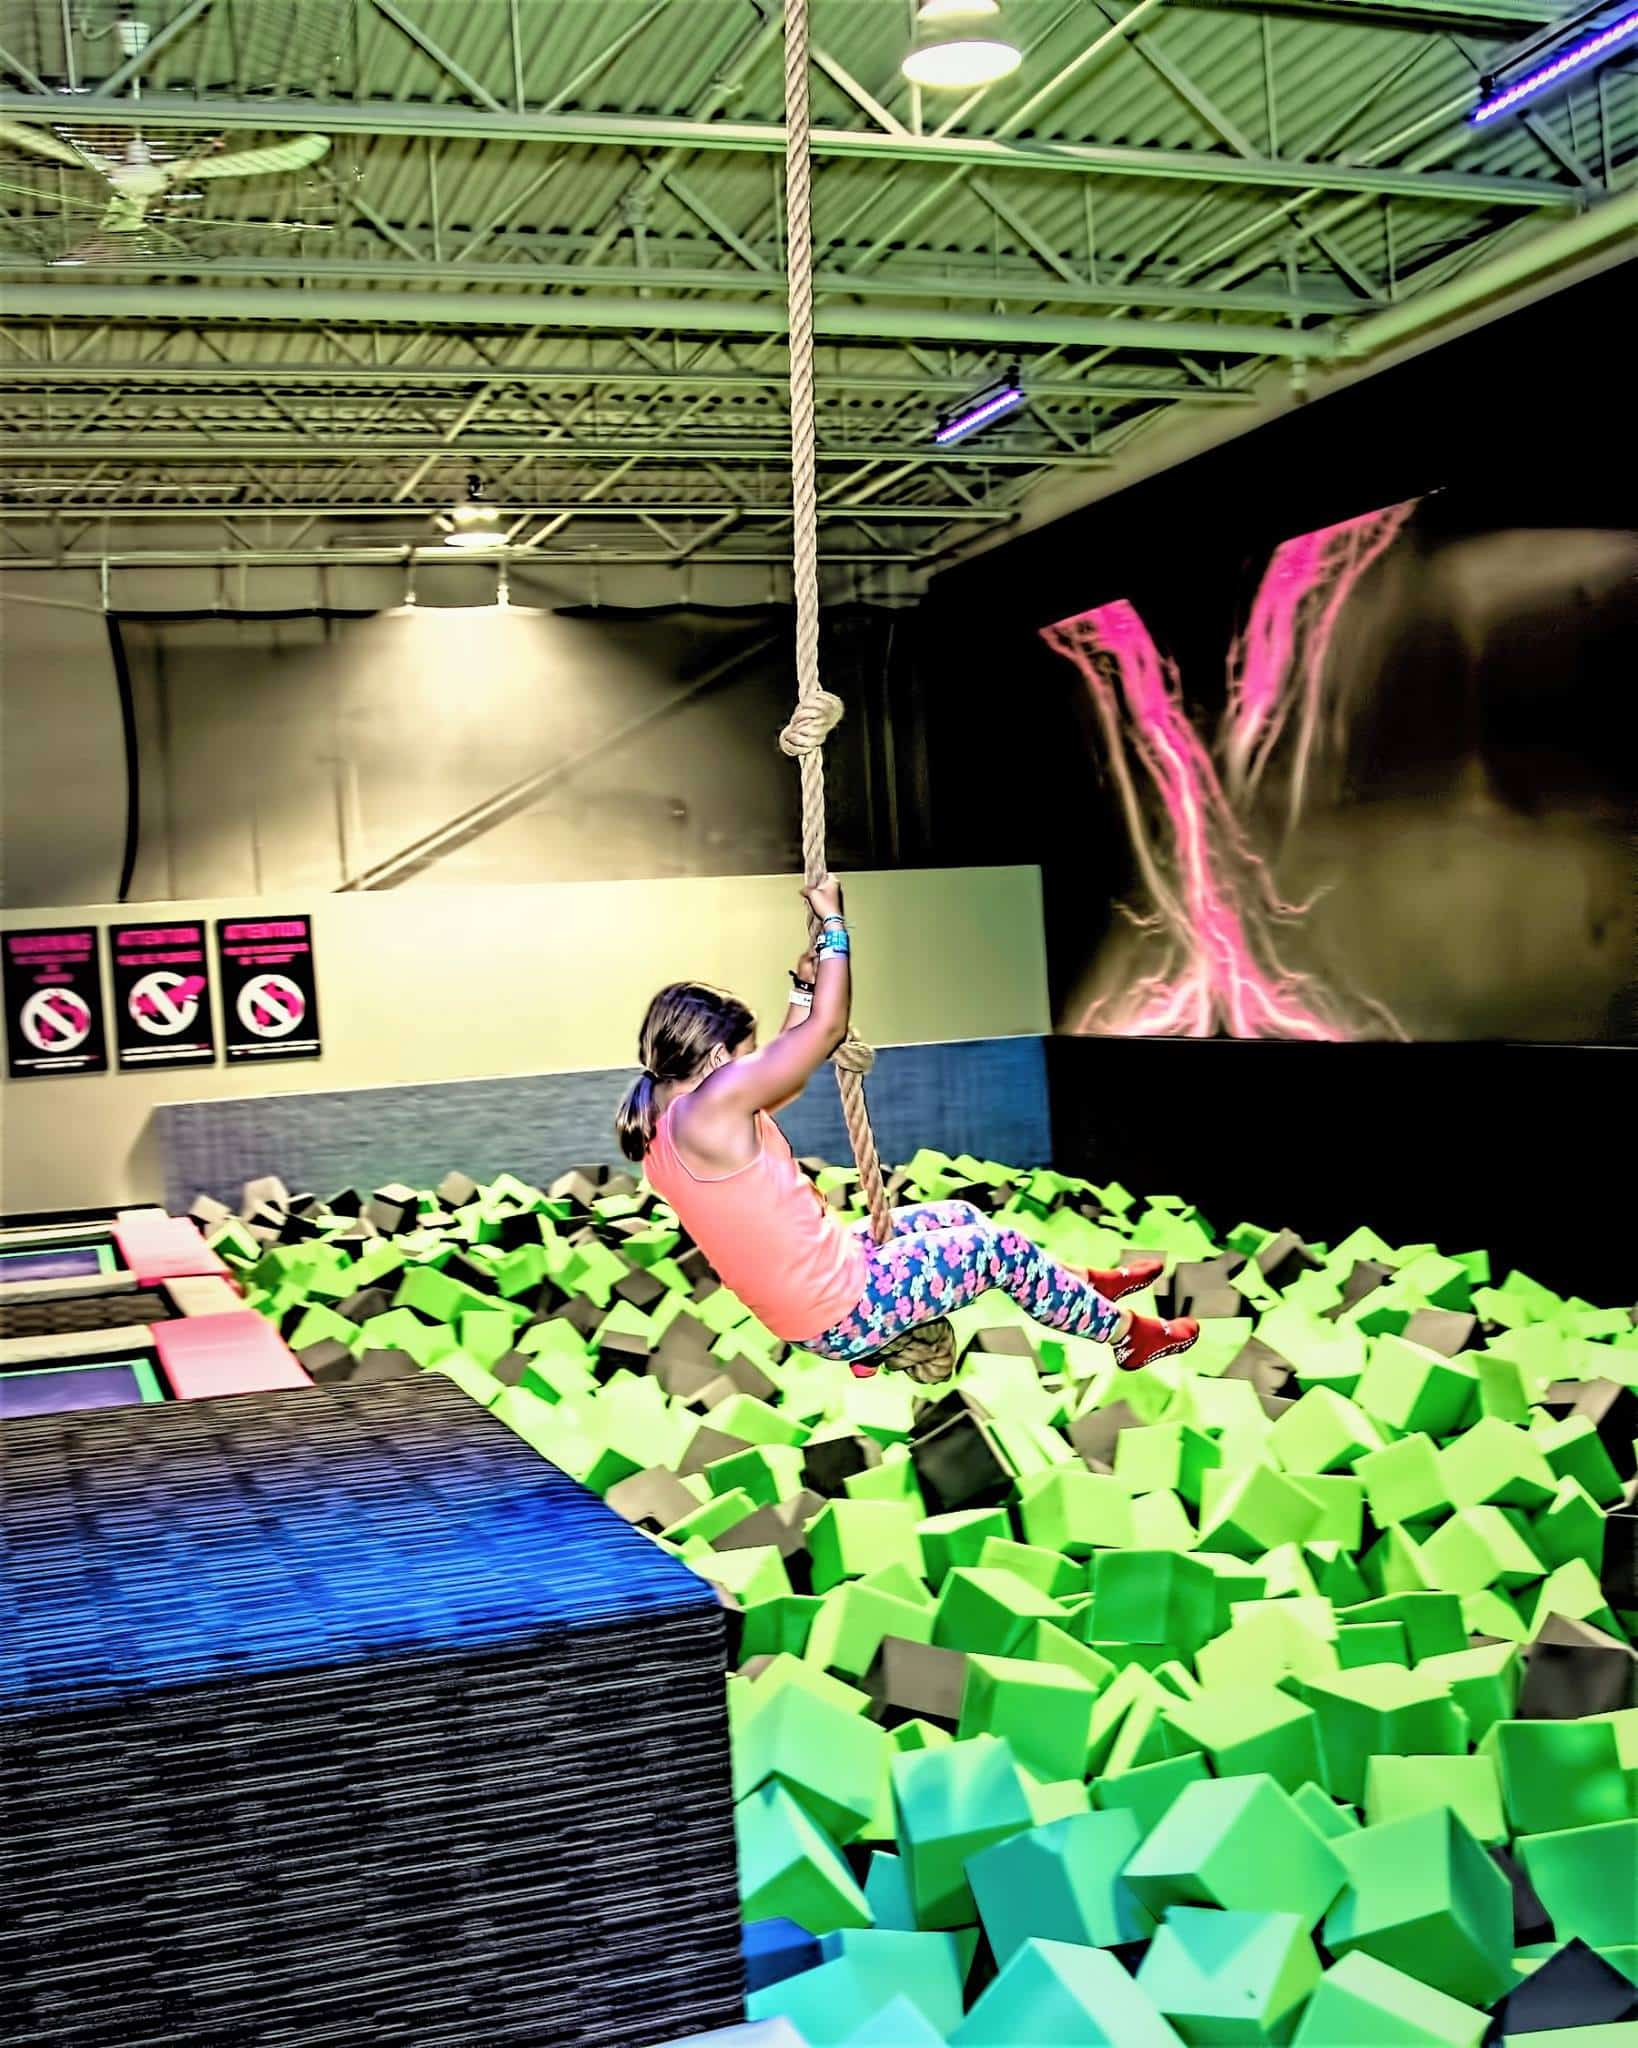 Rope Swing and Launch Lanes into Foam Pit